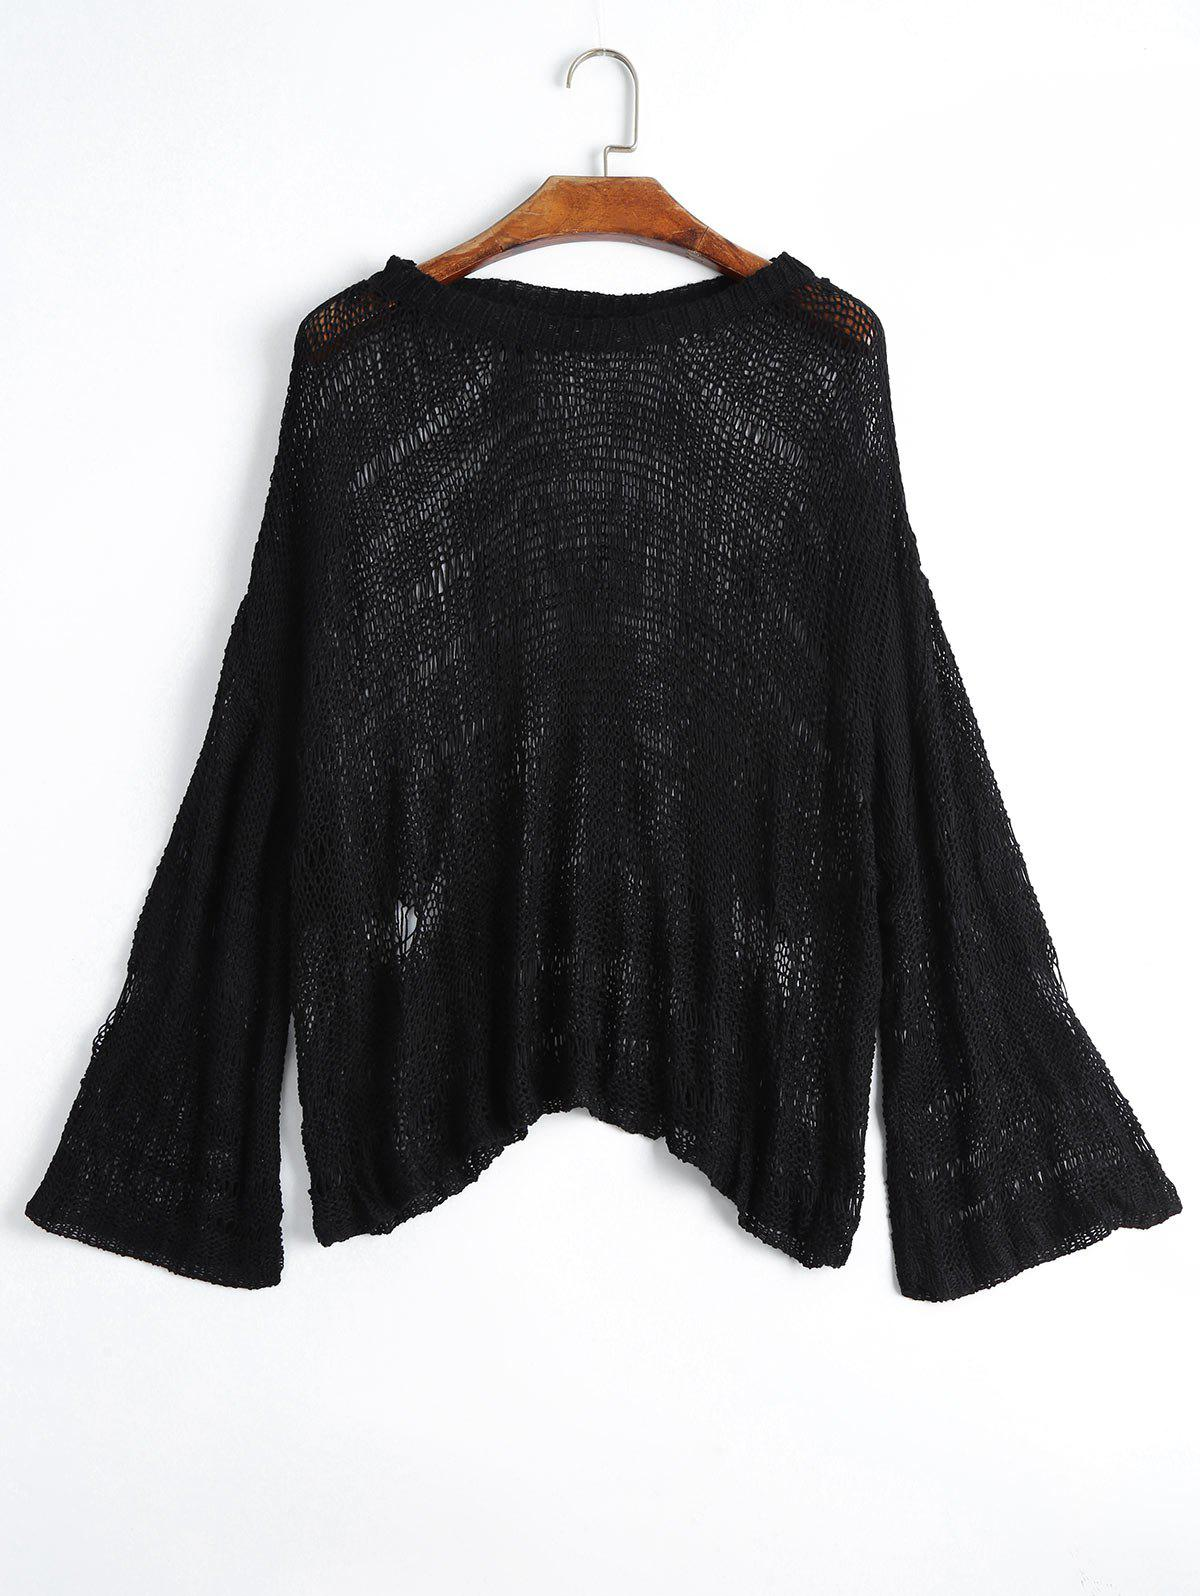 Drop Shoulder Hollow Out Knitted Top 223362902